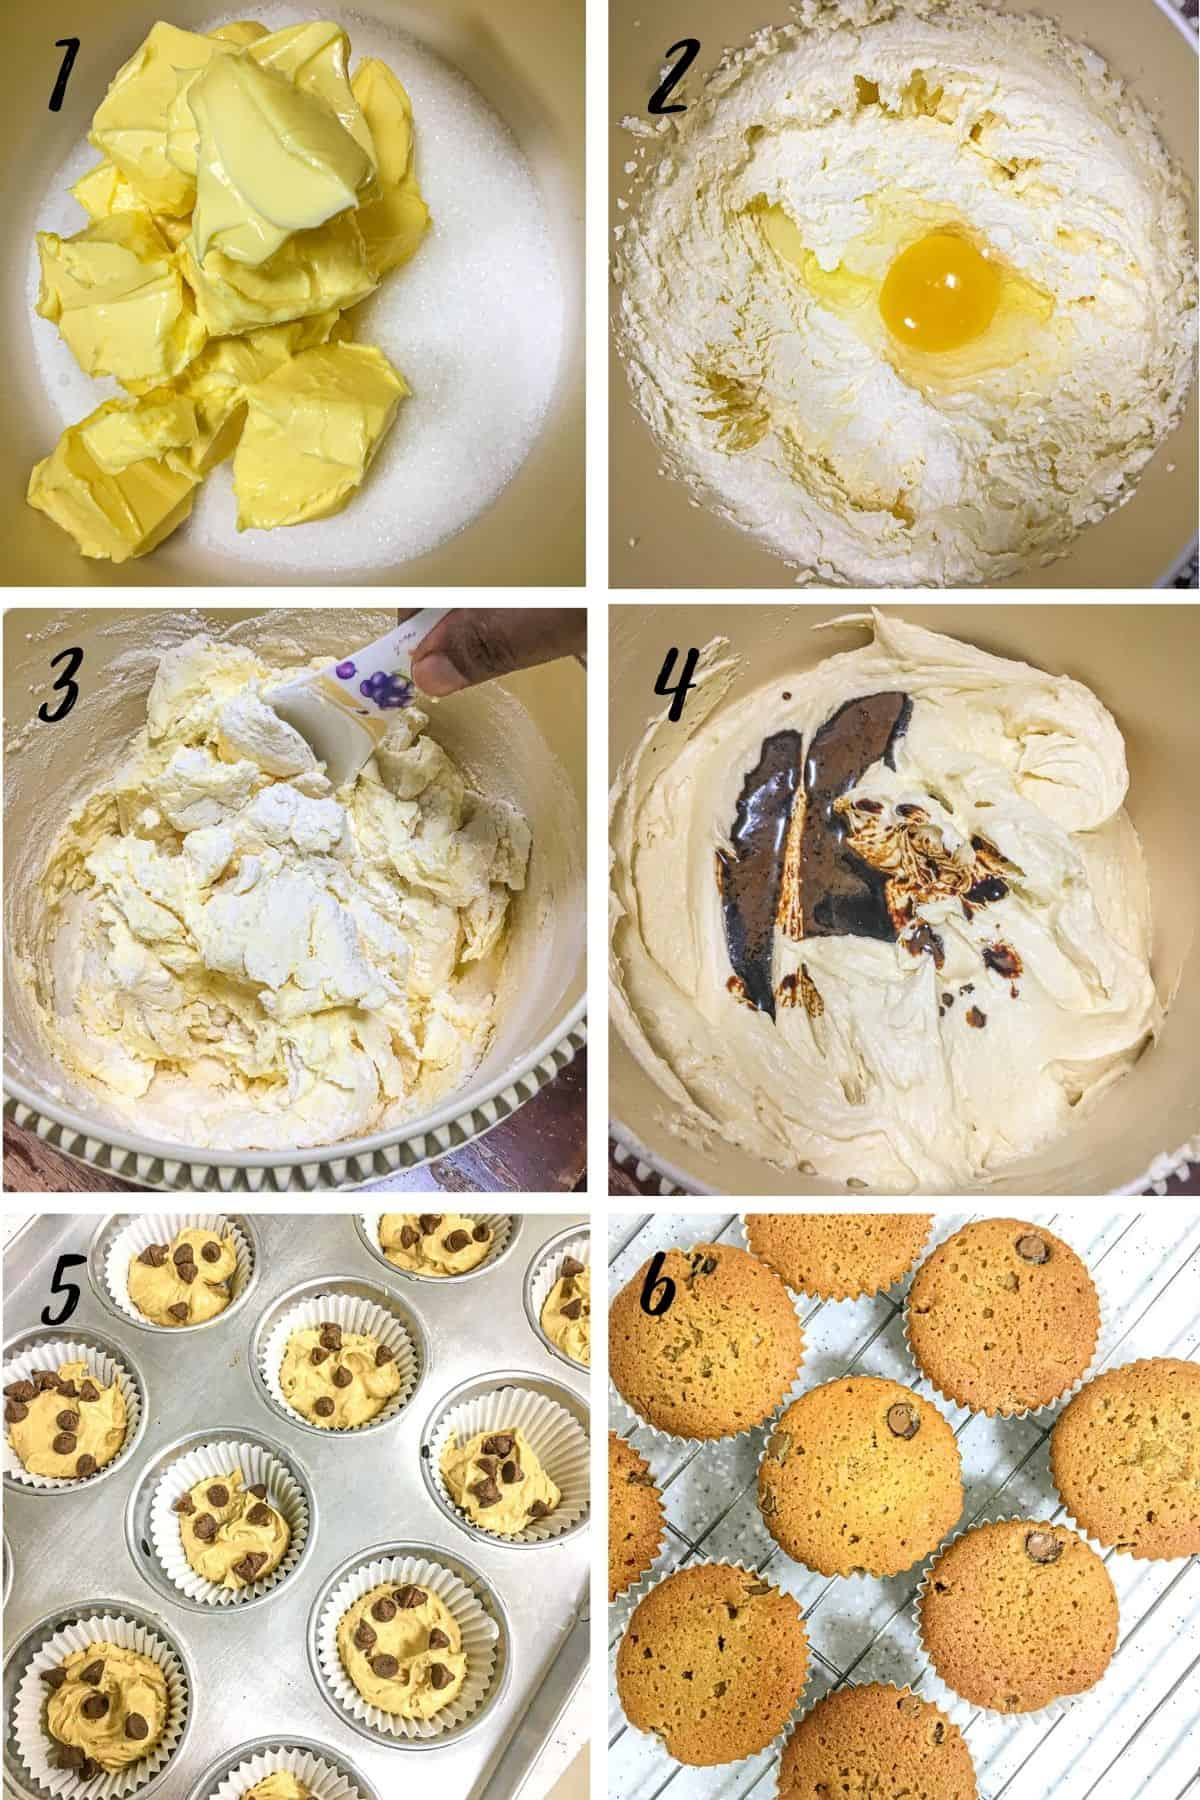 A poster of 6 images showing how to make coffee cupcakes from scratch